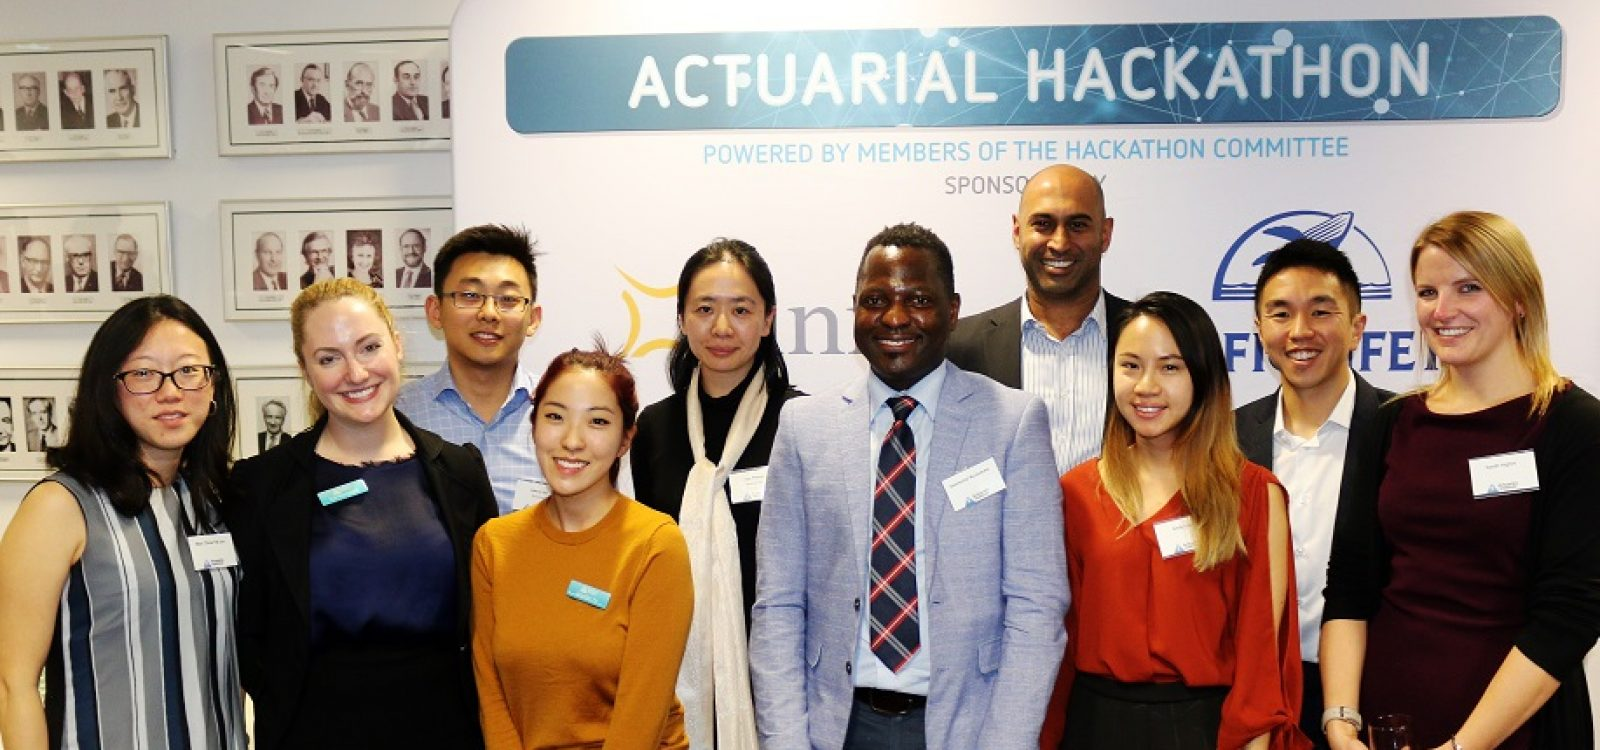 2019 Actuarial Hackathon Showcase